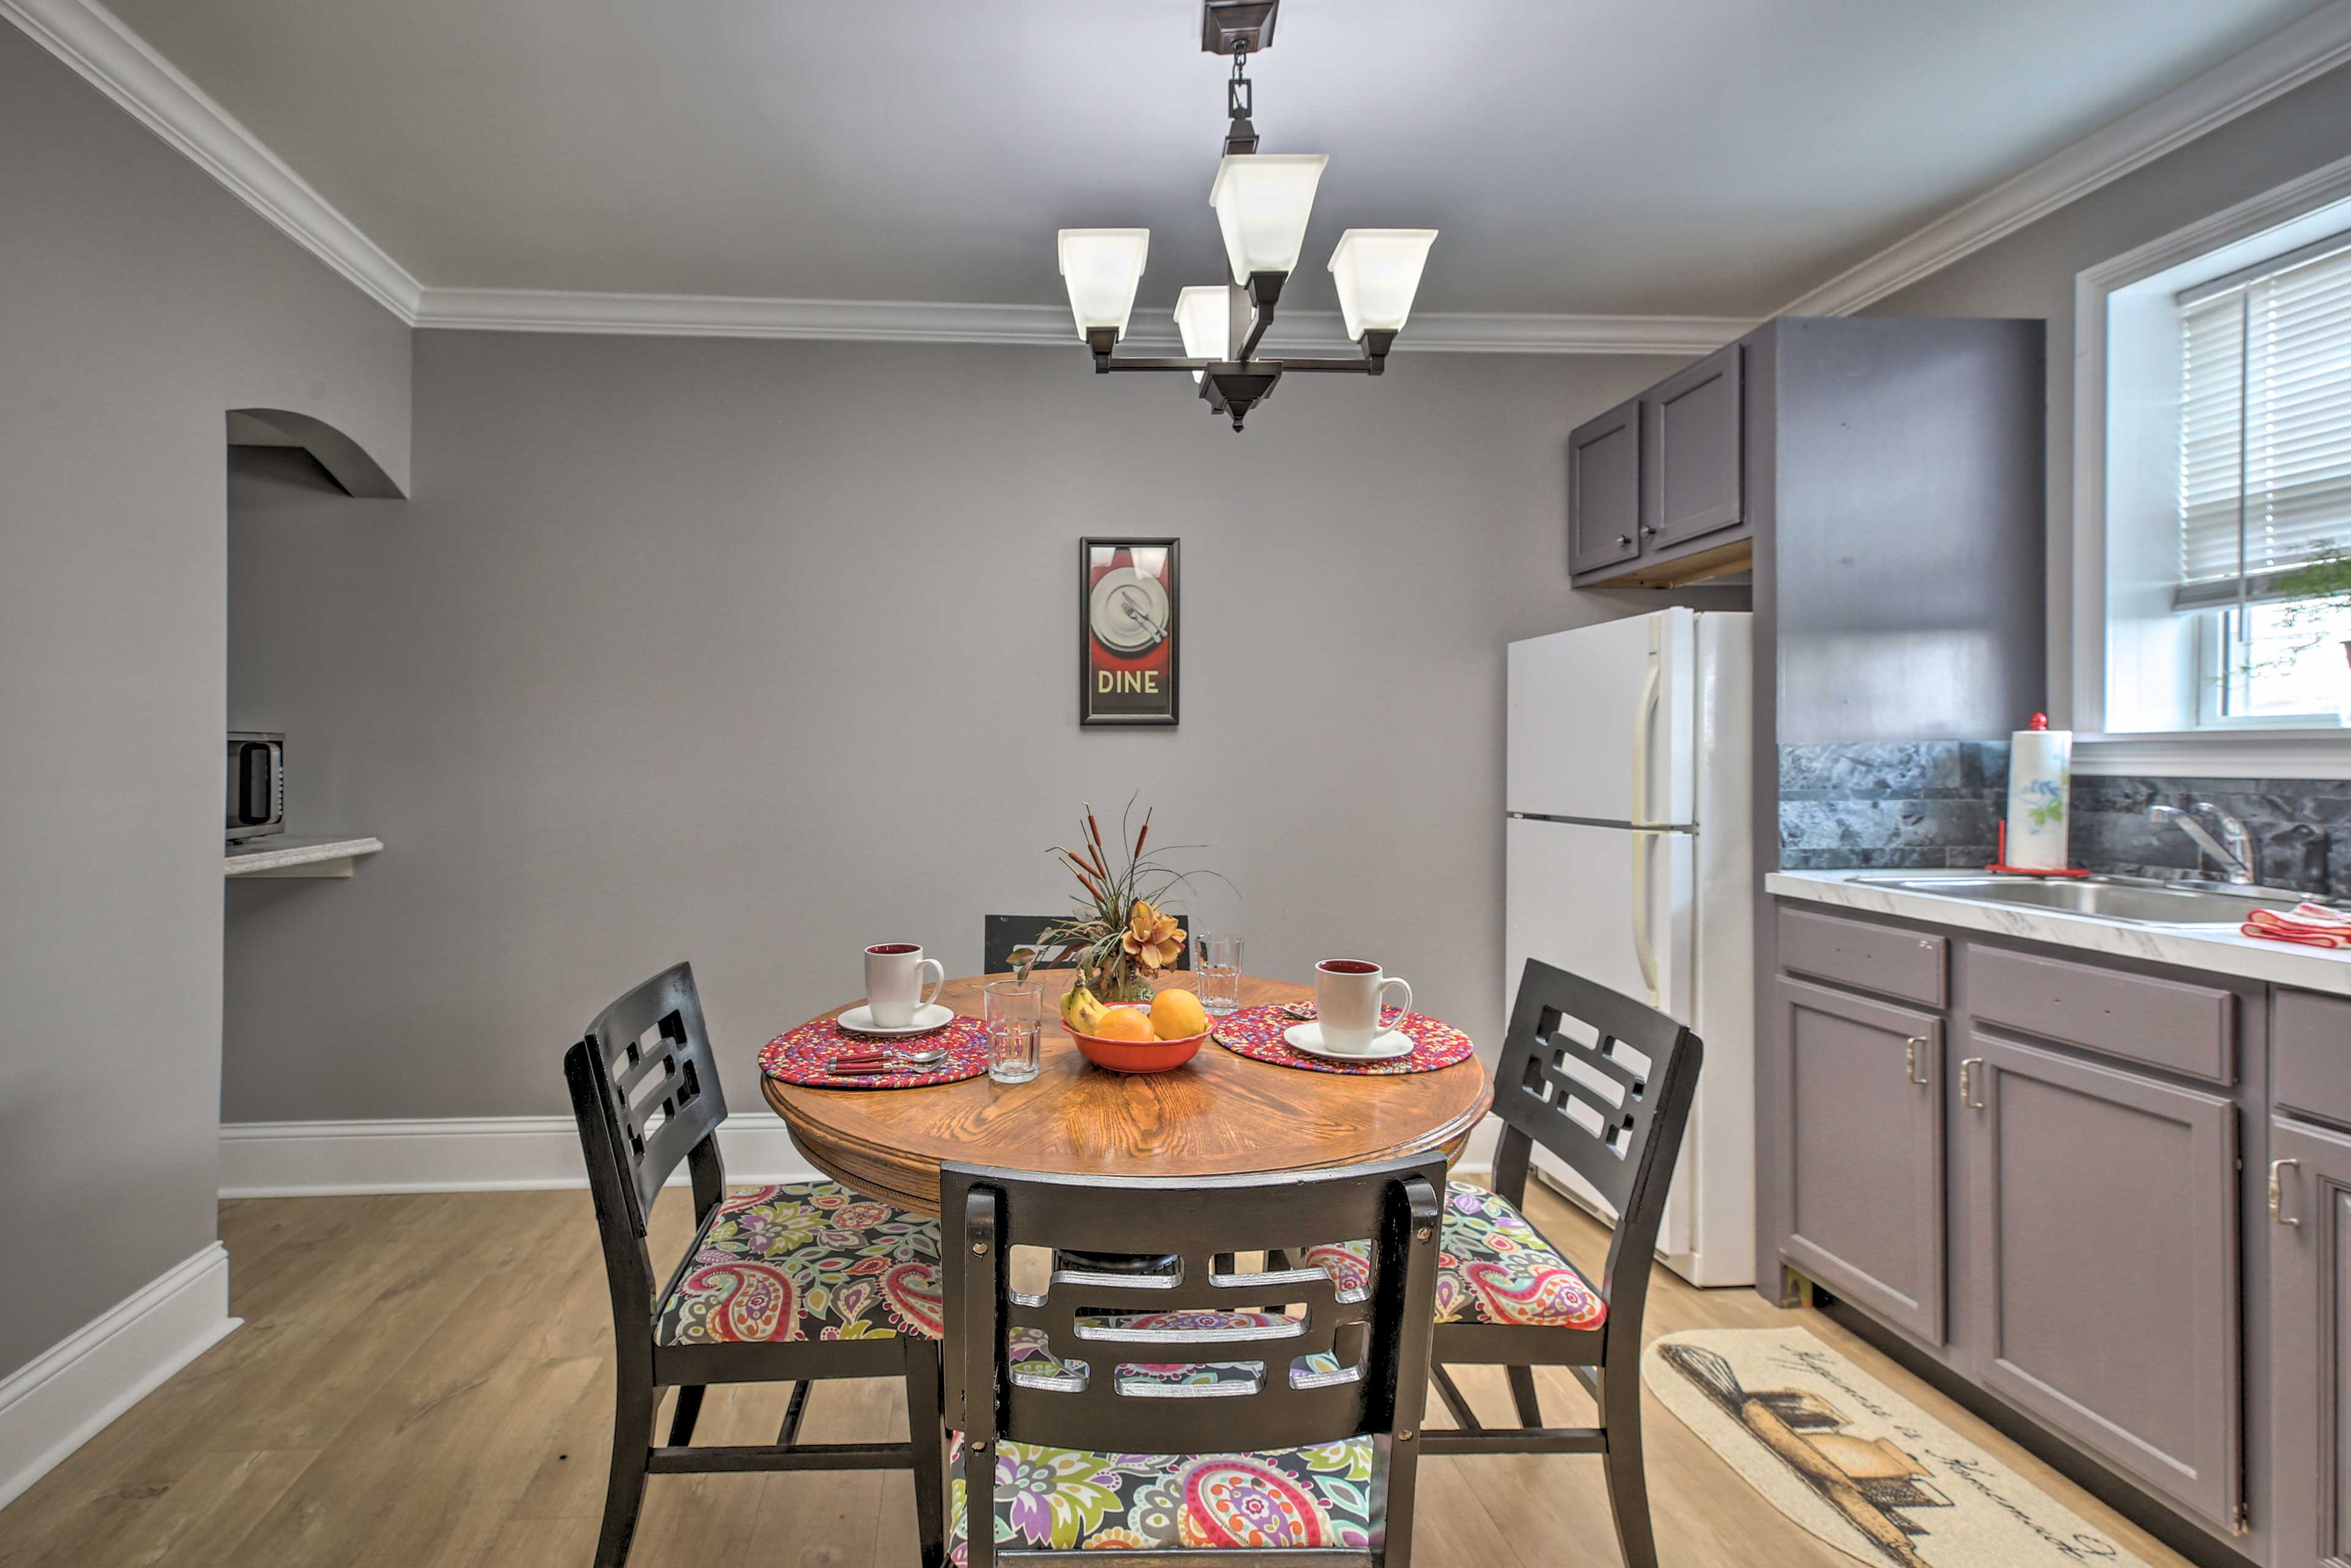 Floral embellishments of the chair cushions add color to the modern kitchen.